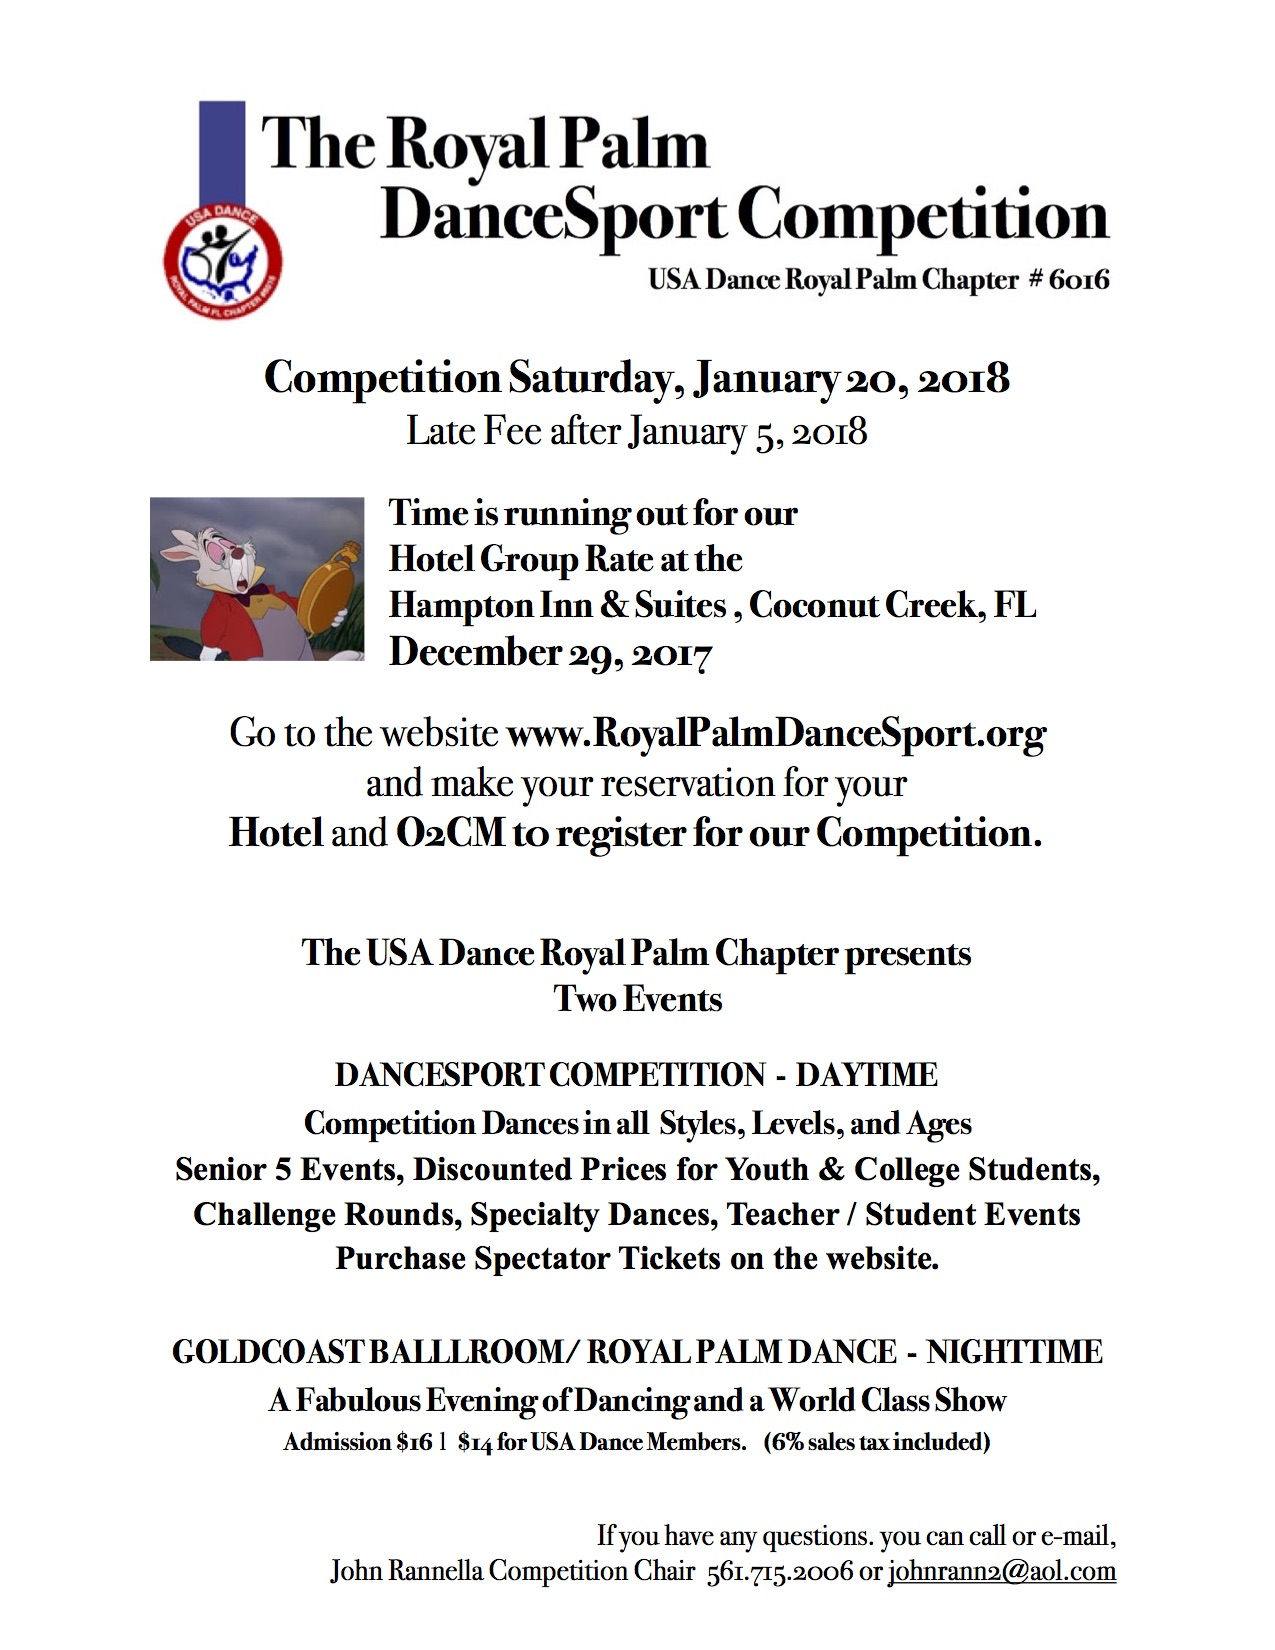 Royal Palm Dancesport Competition - January 20, 2018 - Register by January 5 to avoid Late Fees - Hotel Deadline December 29 (for Hampton Inn)